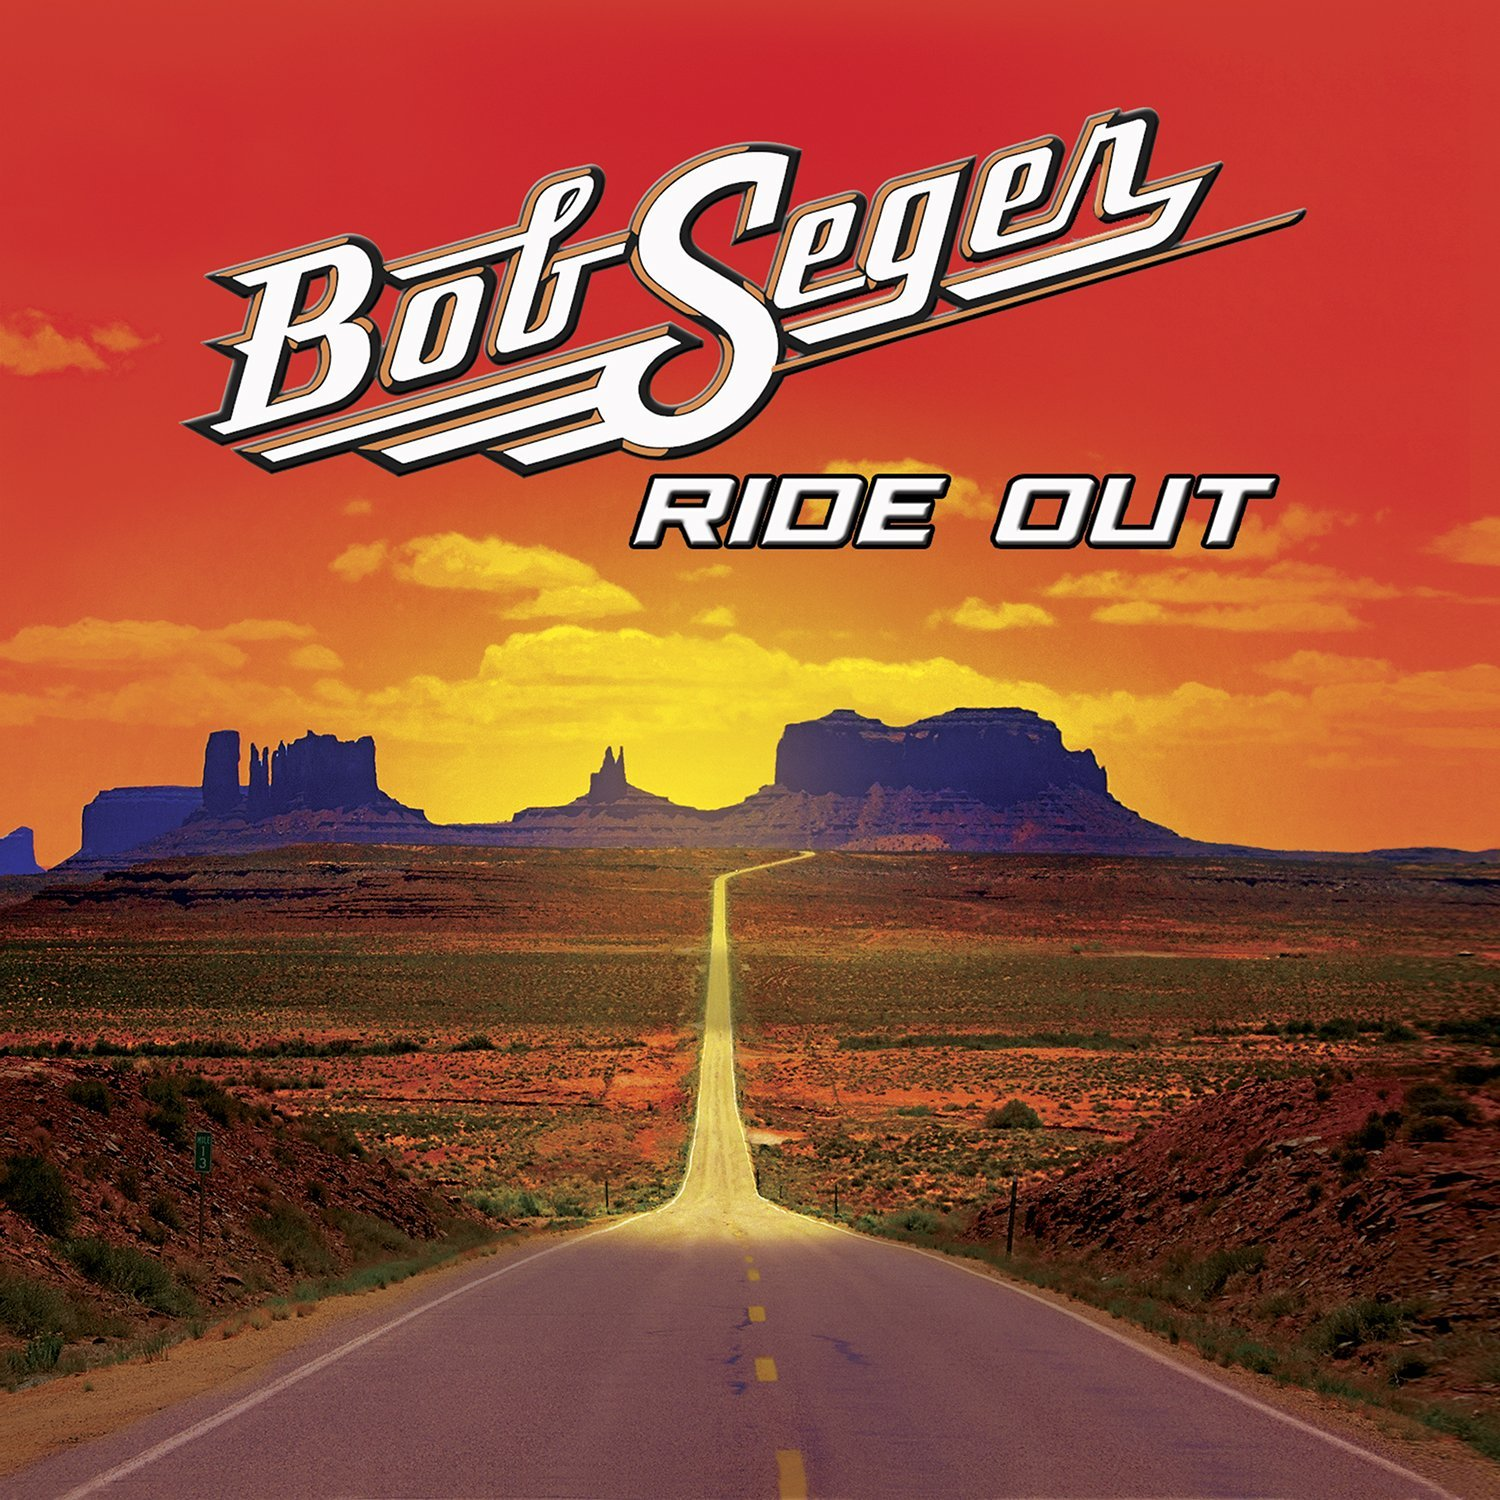 bob seger ride out older wiser and still with the fire down below cd review by john emms. Black Bedroom Furniture Sets. Home Design Ideas